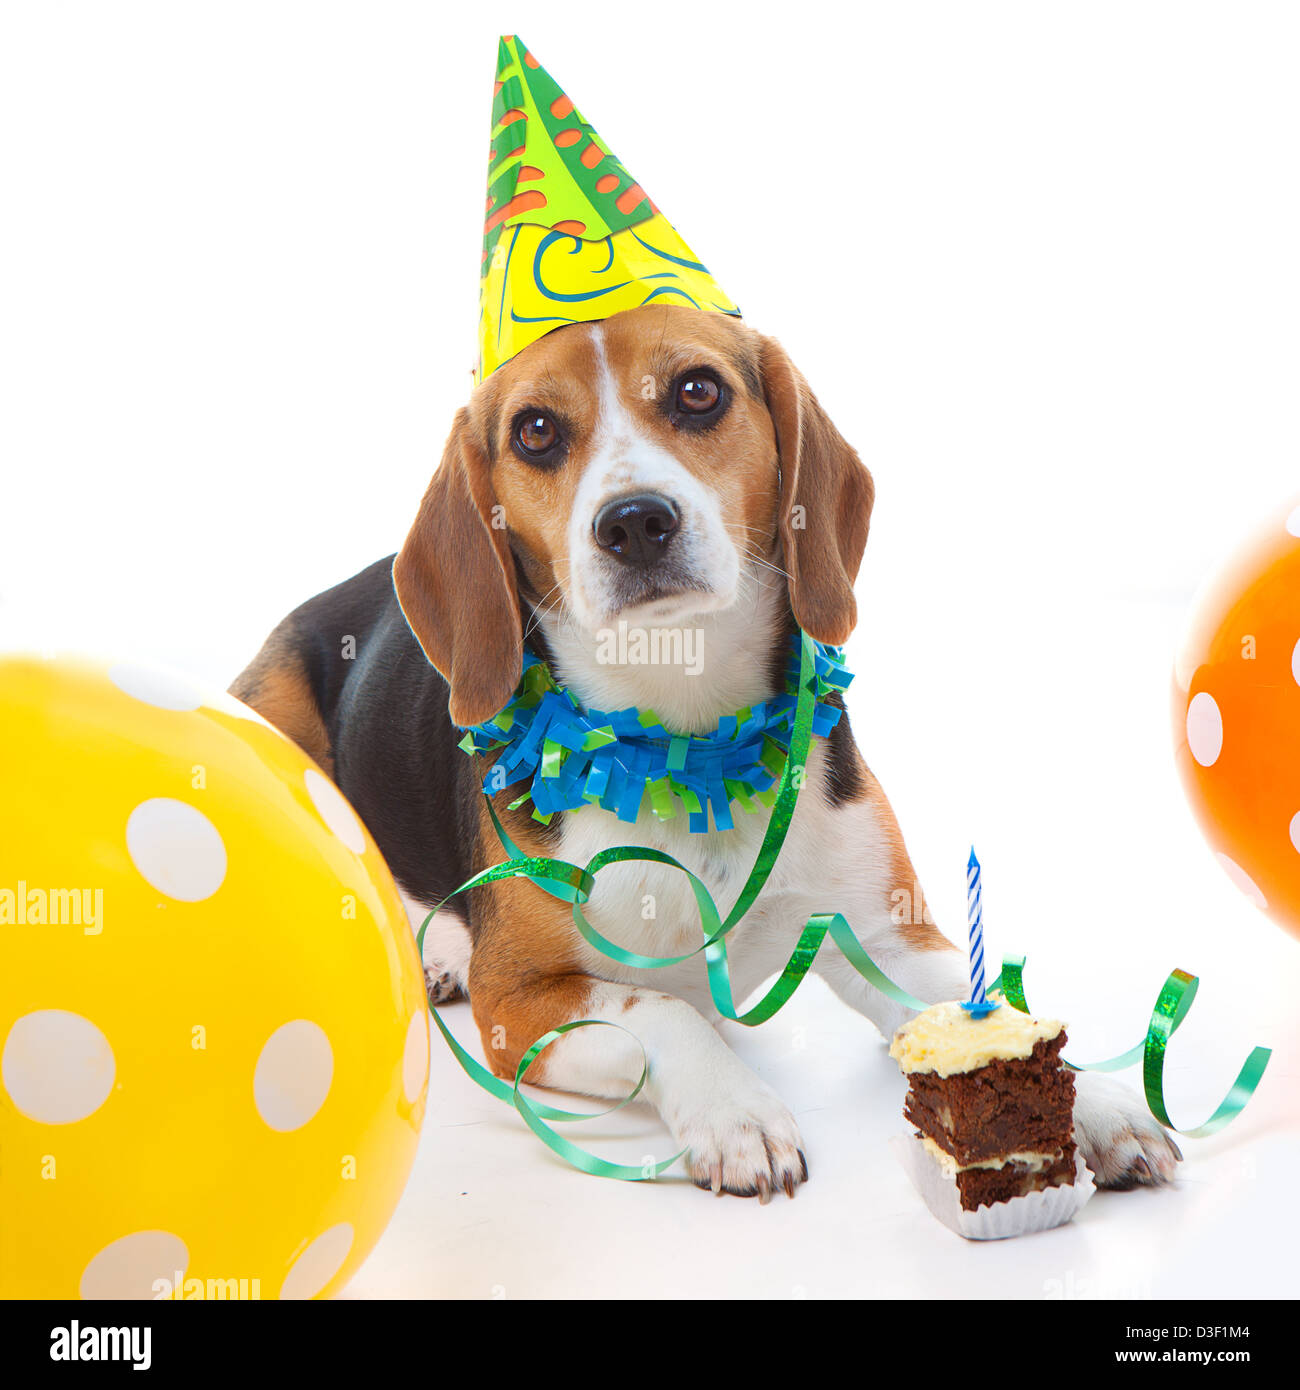 Pet Beagle Dog First Birthday Party Celebration With Cake Hat And Balloons